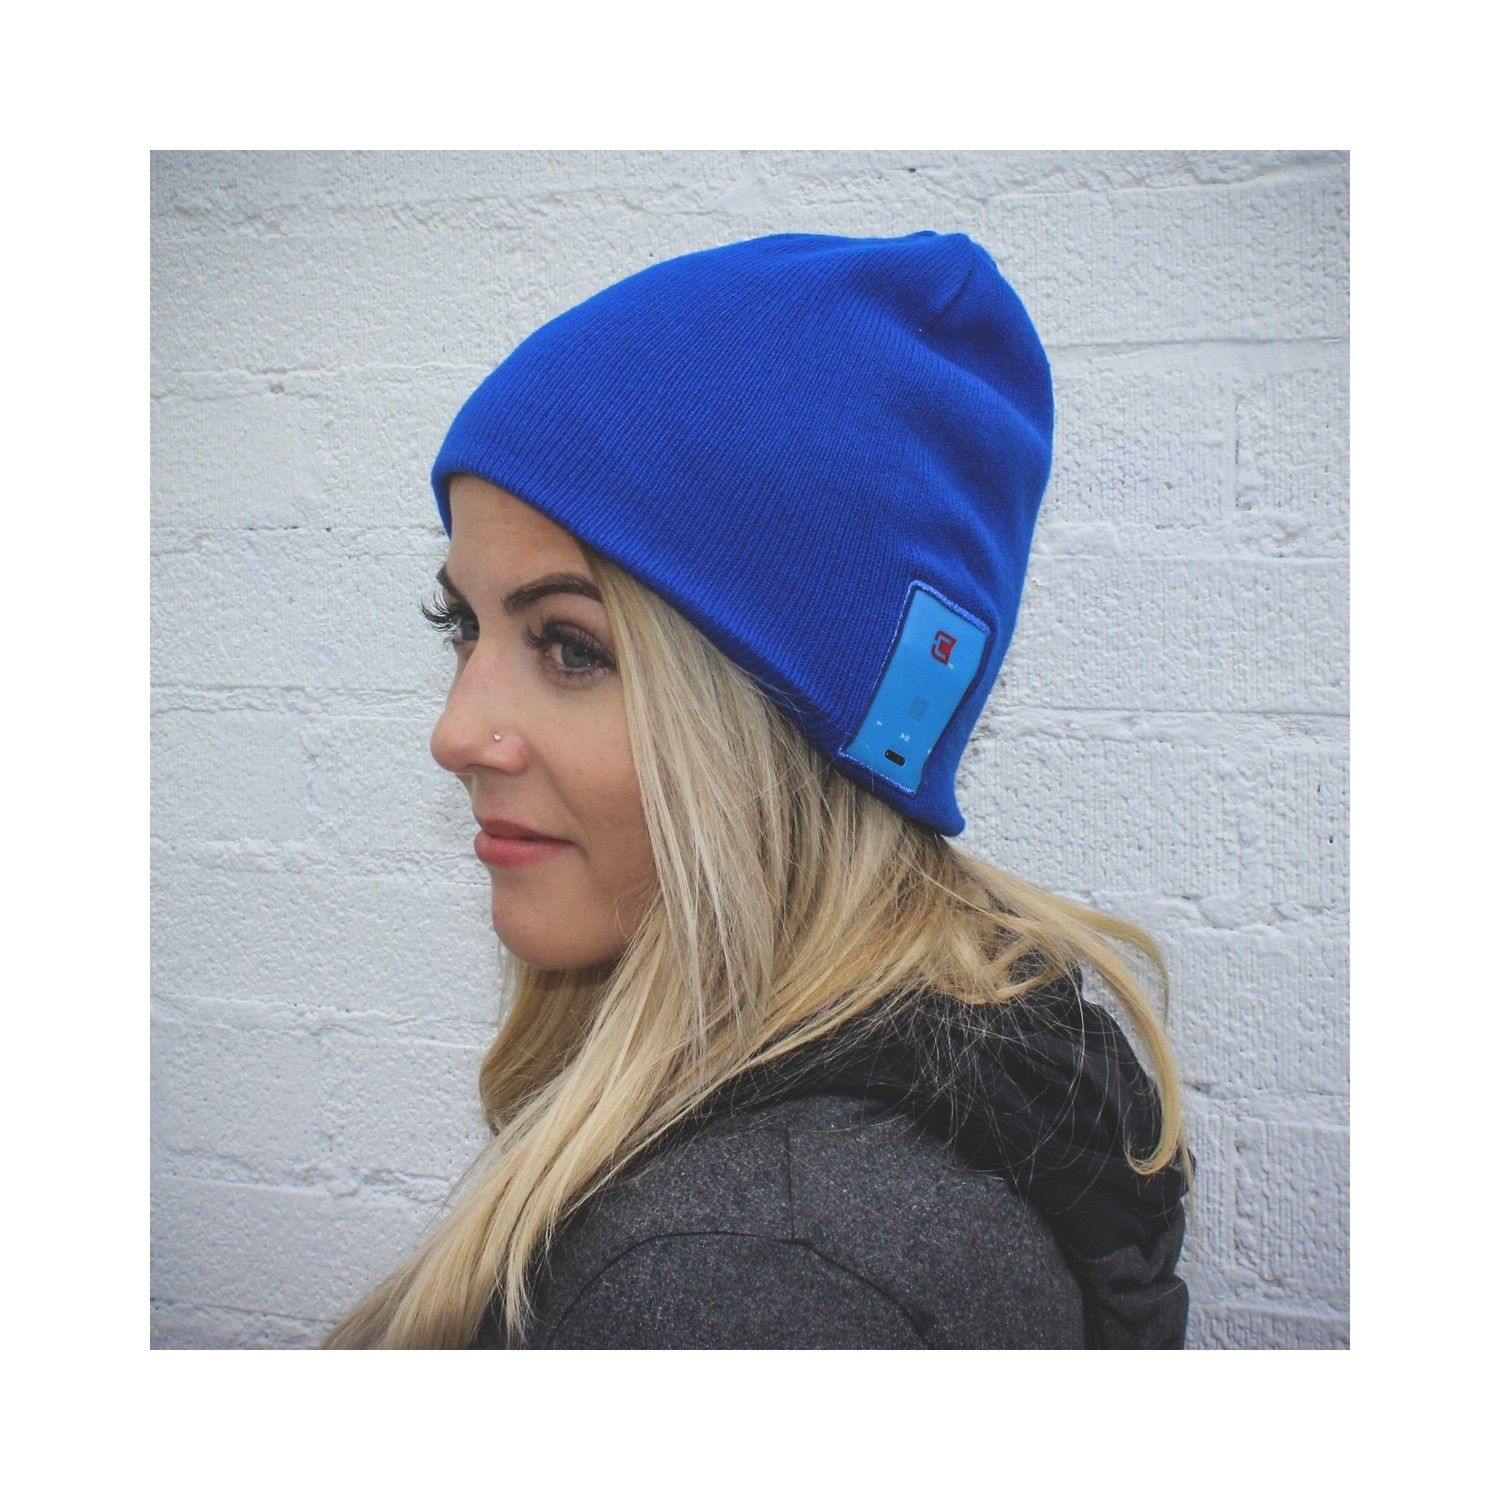 02fa814298e Caseco Dual Layered Bluetooth Toque Everyday Style Hat - Blue   Smart  Clothing - Best Buy Canada